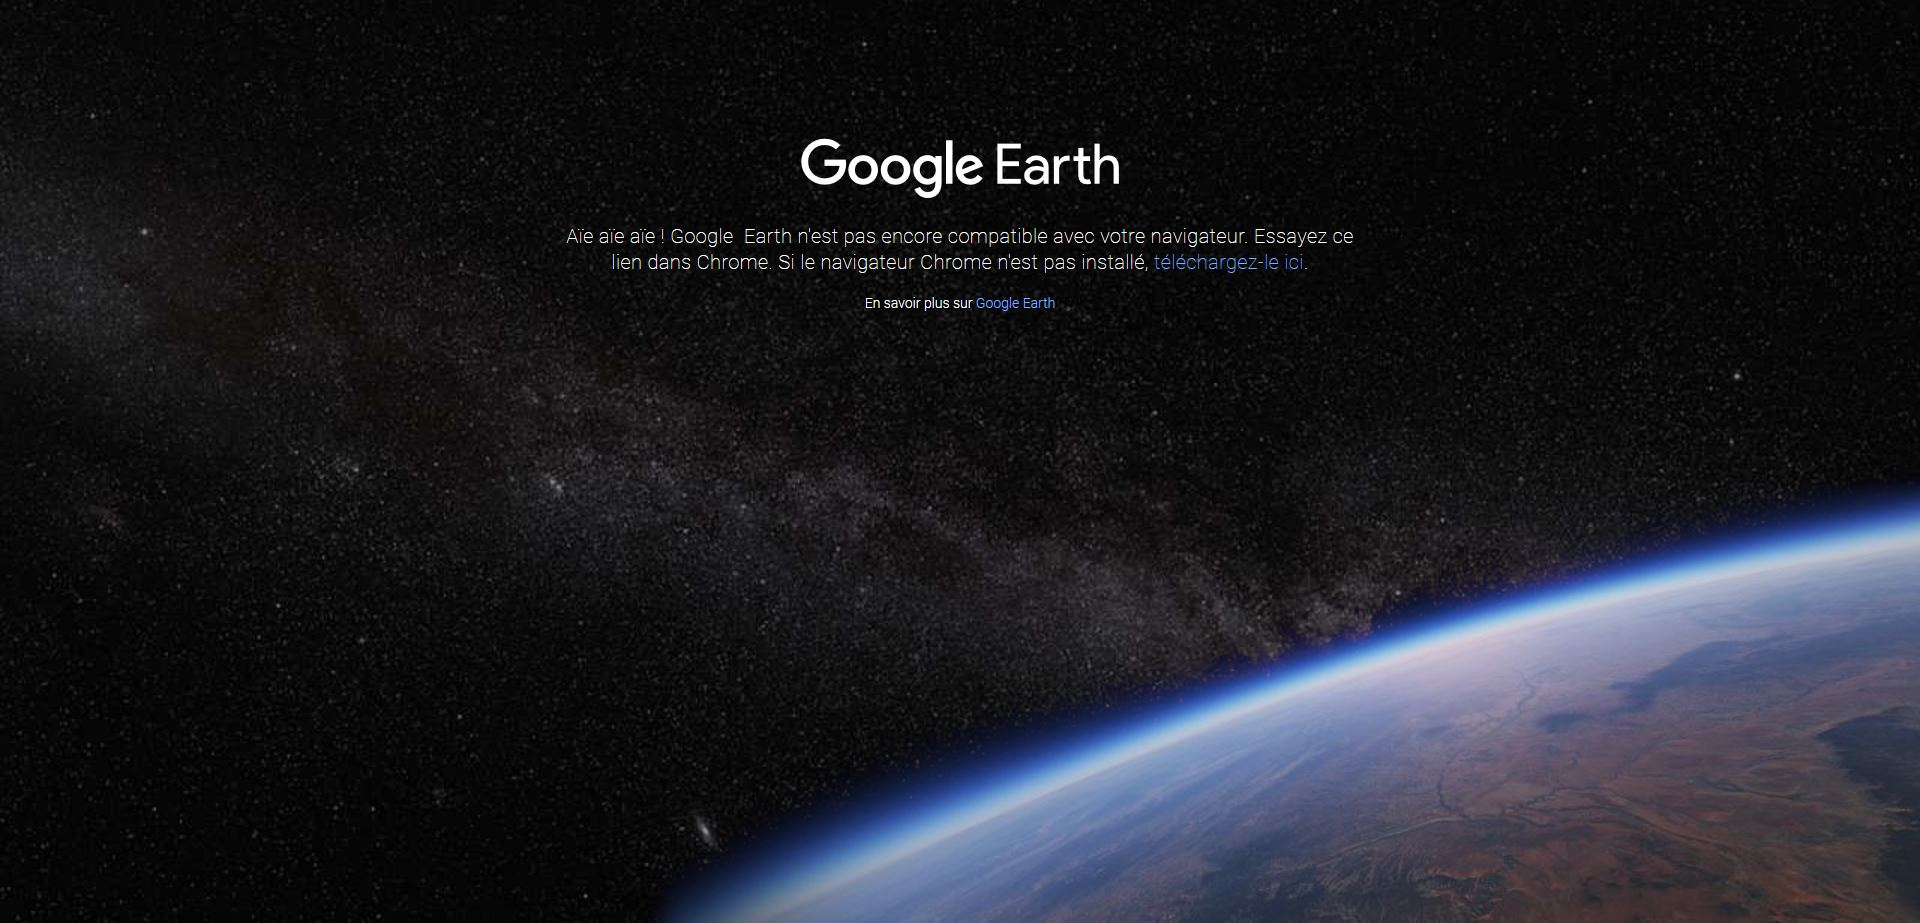 Nouveau Google Earth le 18 AVRIL 2017 - Page 3 Tsge_622